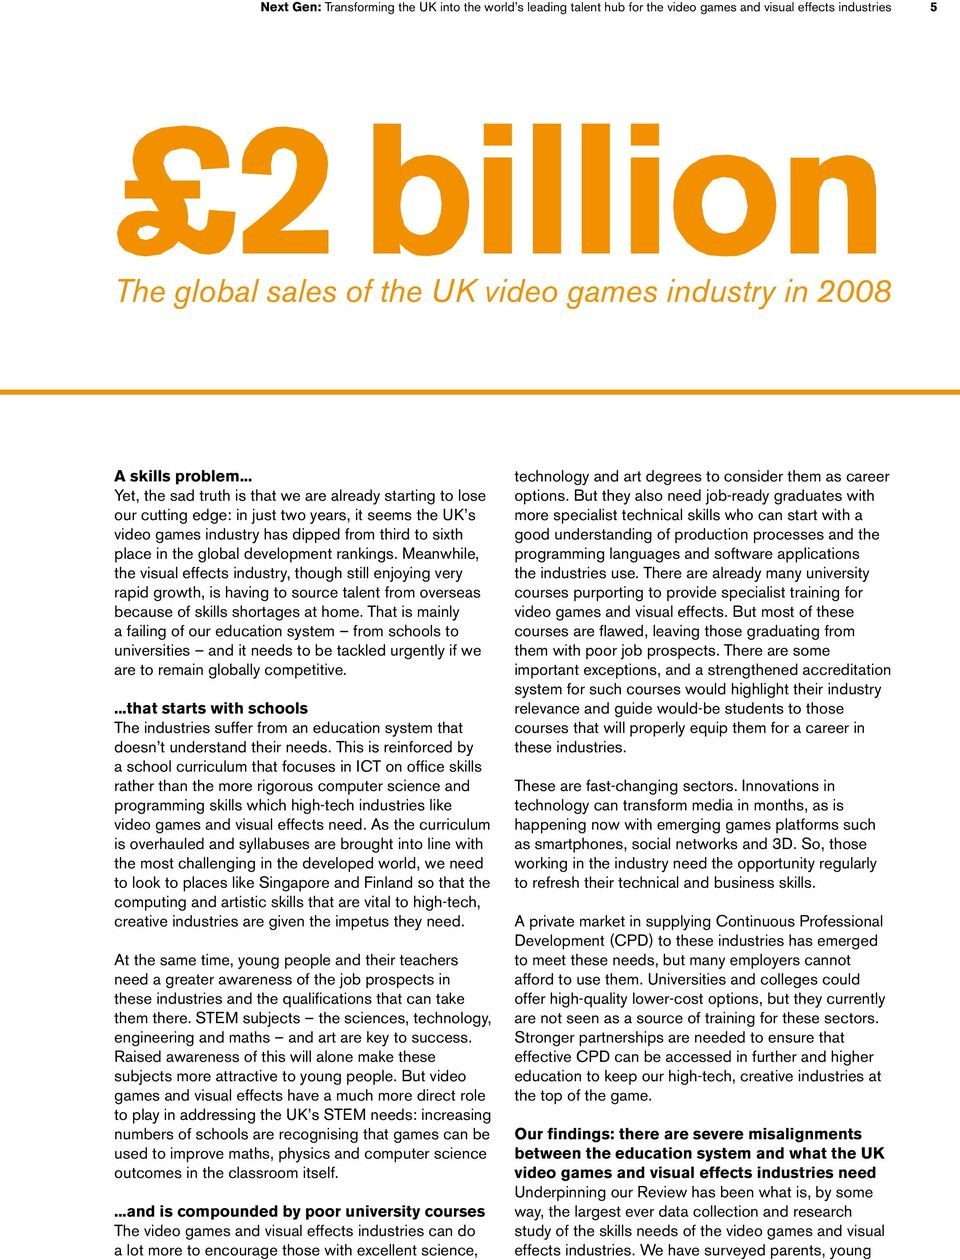 .. Yet, the sad truth is that we are already starting to lose our cutting edge: in just two years, it seems the UK s video games industry has dipped from third to sixth place in the global